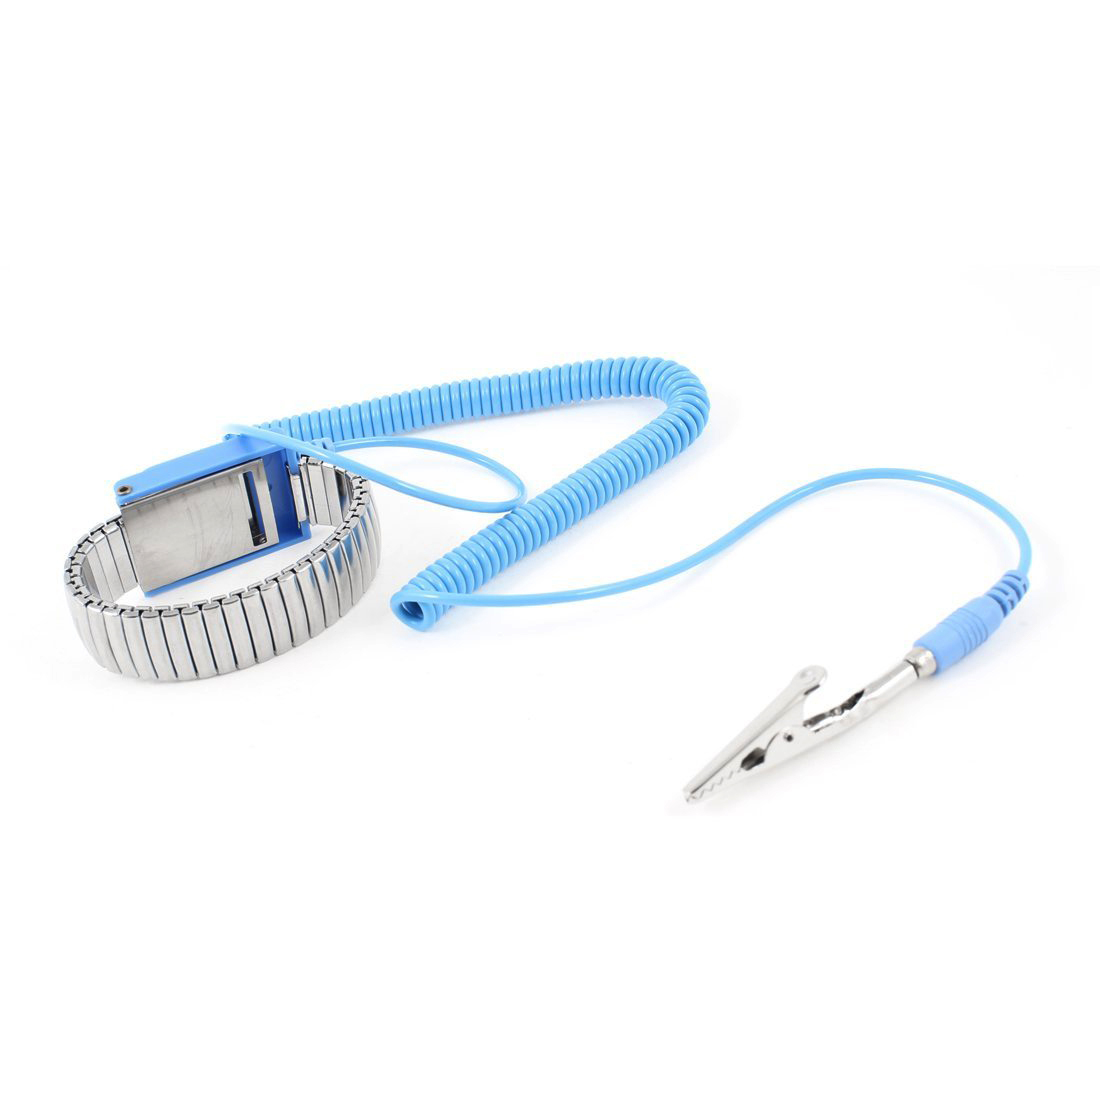 Smart Accessories United Antistatic Esd Wristband Metal Adjustable Grounding Strap Blue